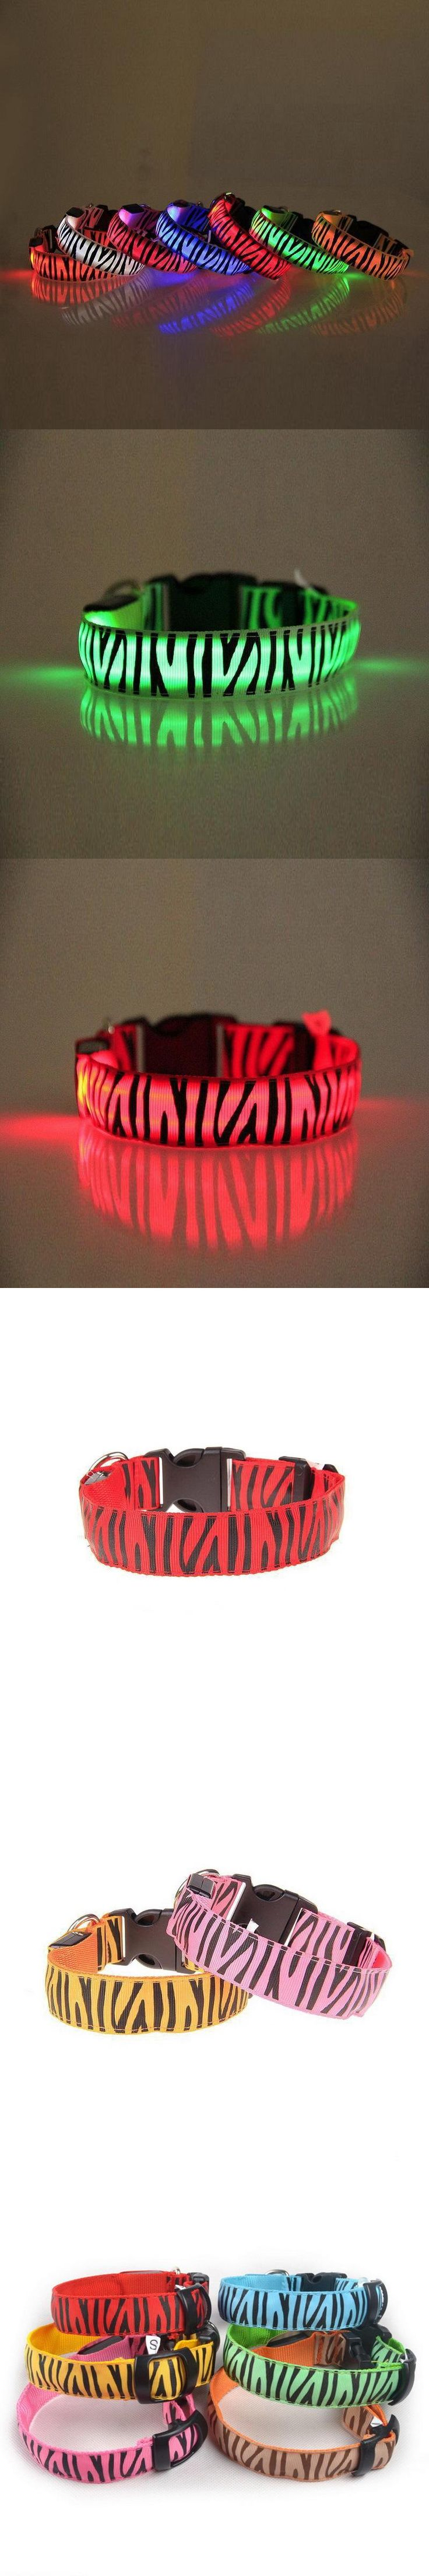 Waterproof Safety Pet Collar LED Glow Necklace Pet Products Electric Flashing Lighted Up Cat LED Dog Collar S M L XL